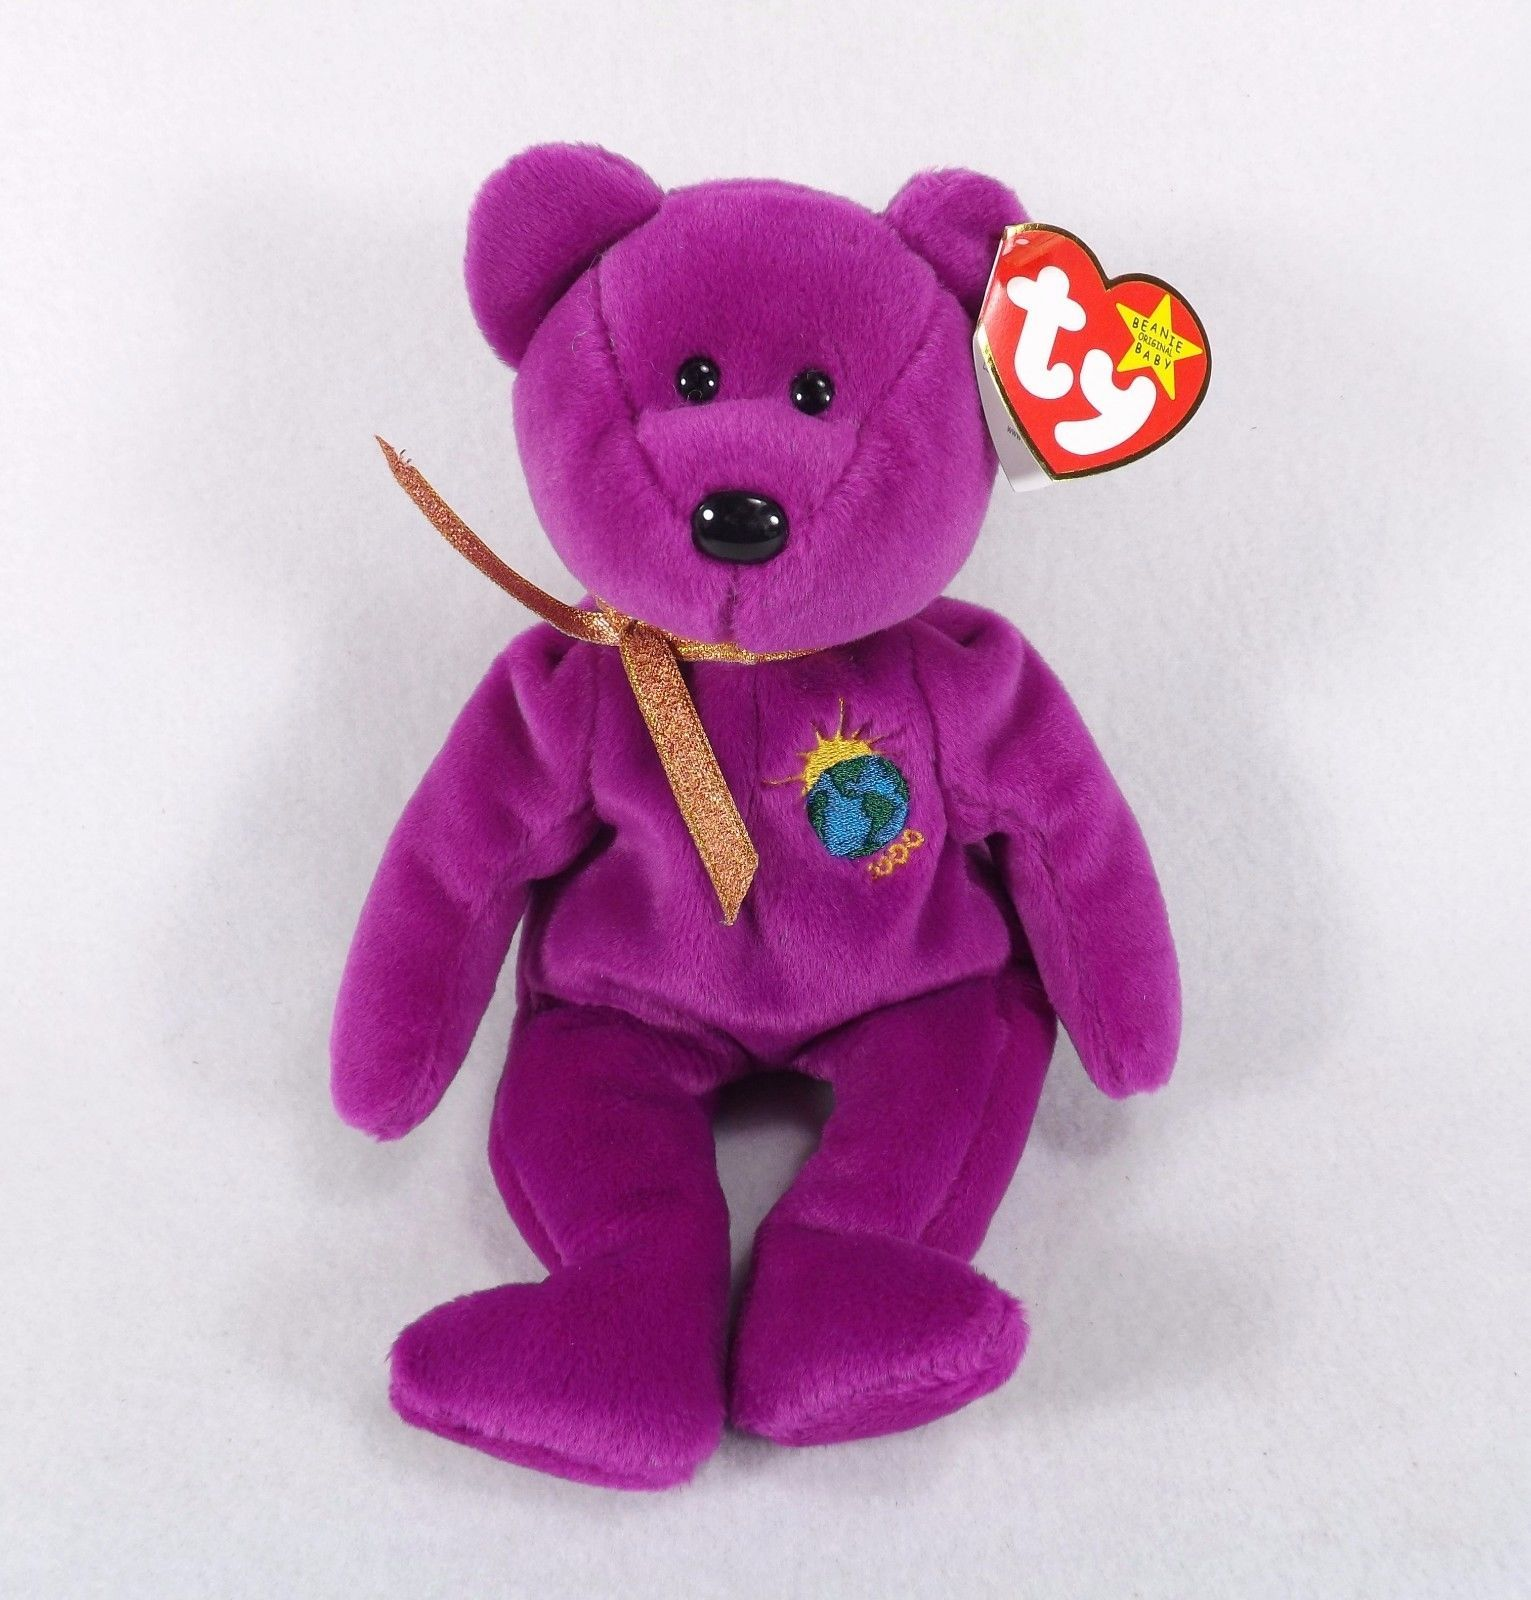 33c786b08b4 S l1600. S l1600. Previous. MILLENIUM BEAR 4TH GENERATION ERROR TAG-TY  BEANIE BABY-ADULT OWNED-EX COND